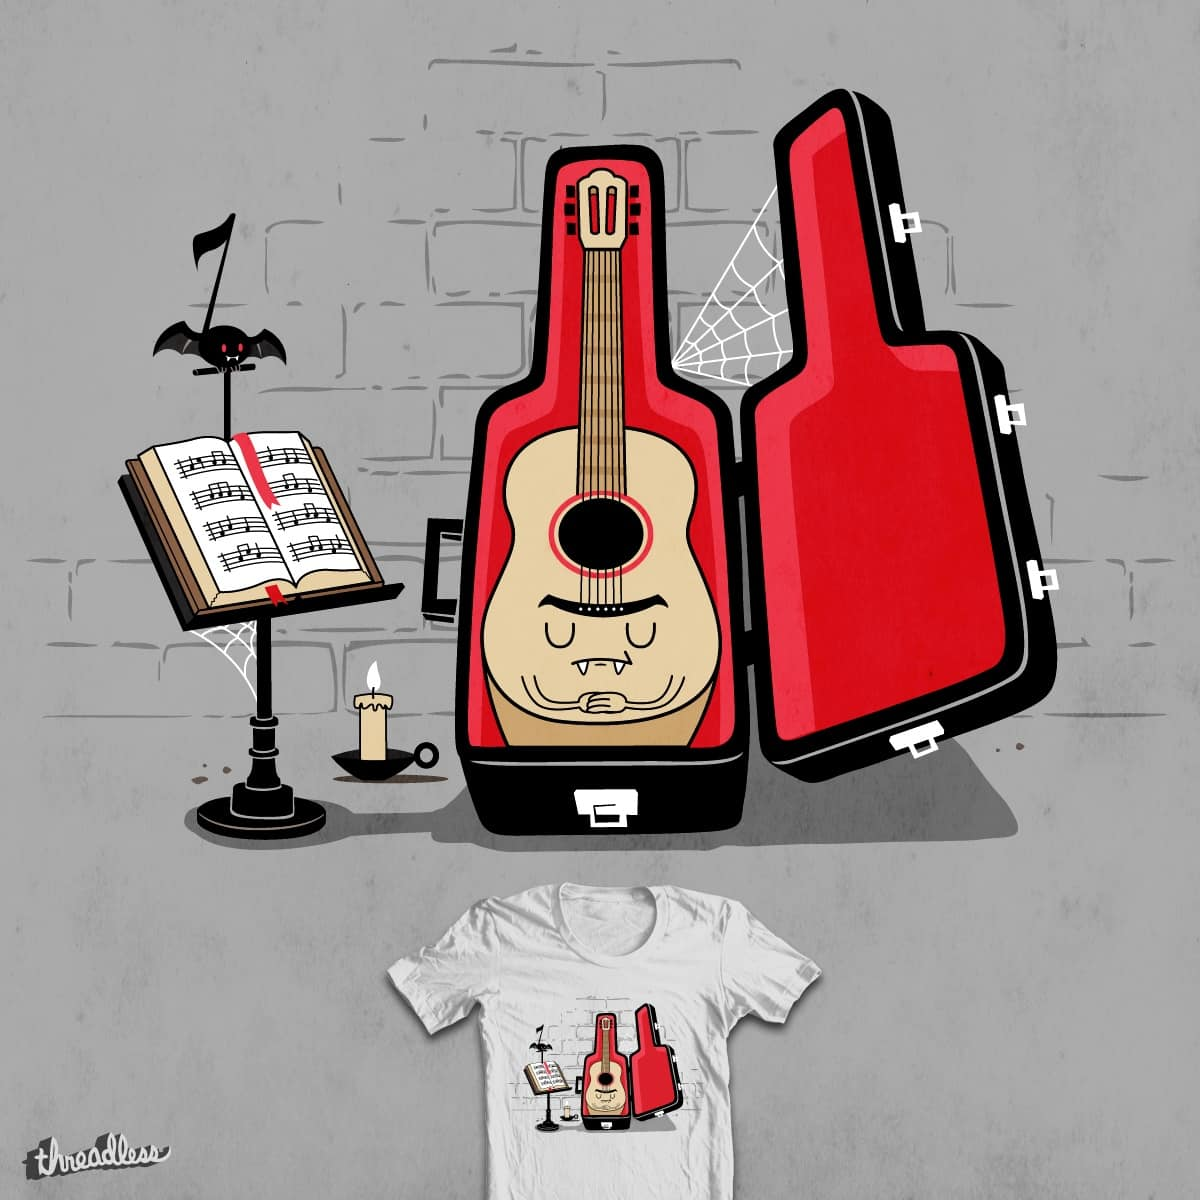 I Vant To Strum Your Blood by FRICKINAWESOME and weird&co on Threadless